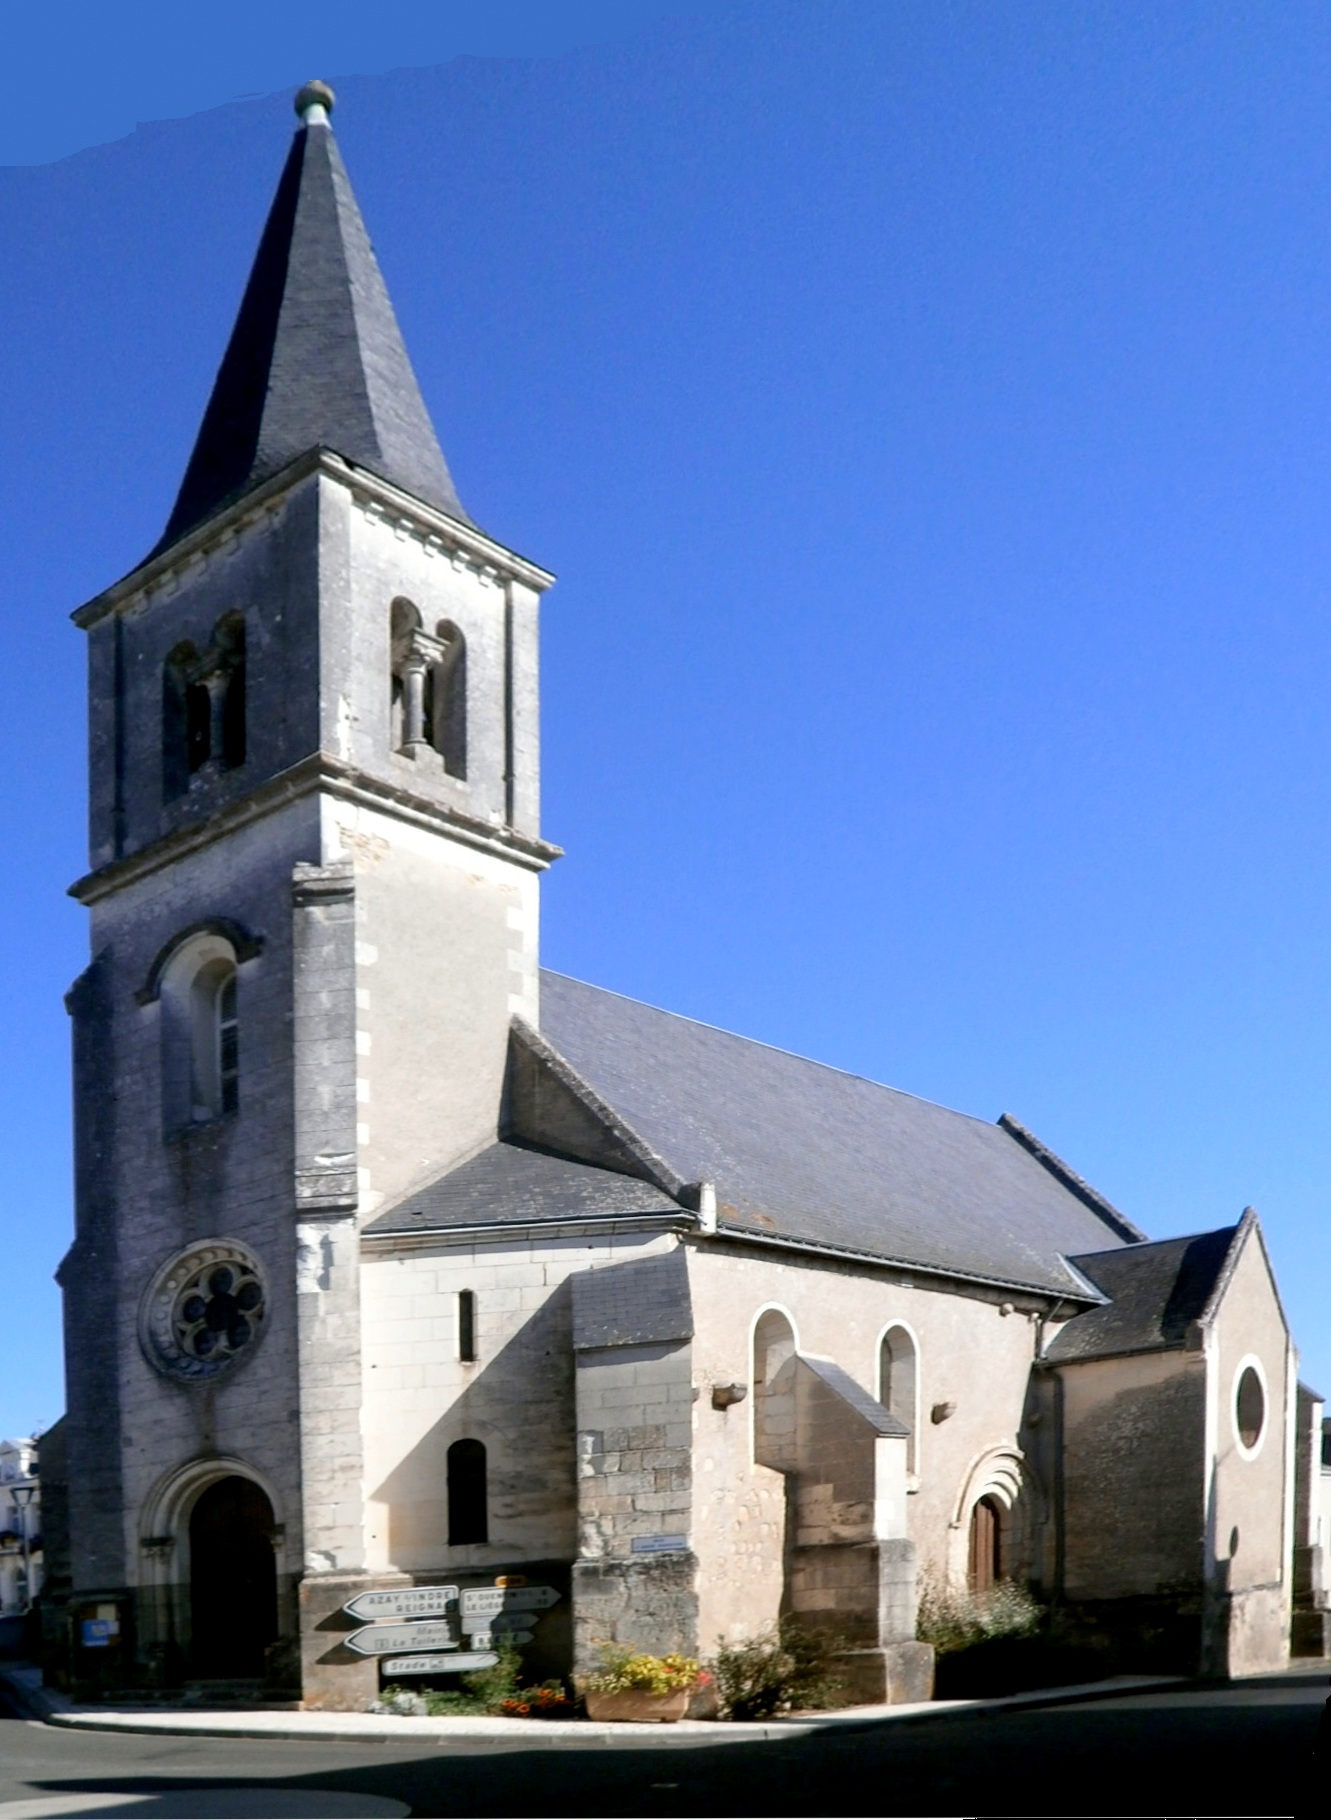 Chambourg-sur-Indre